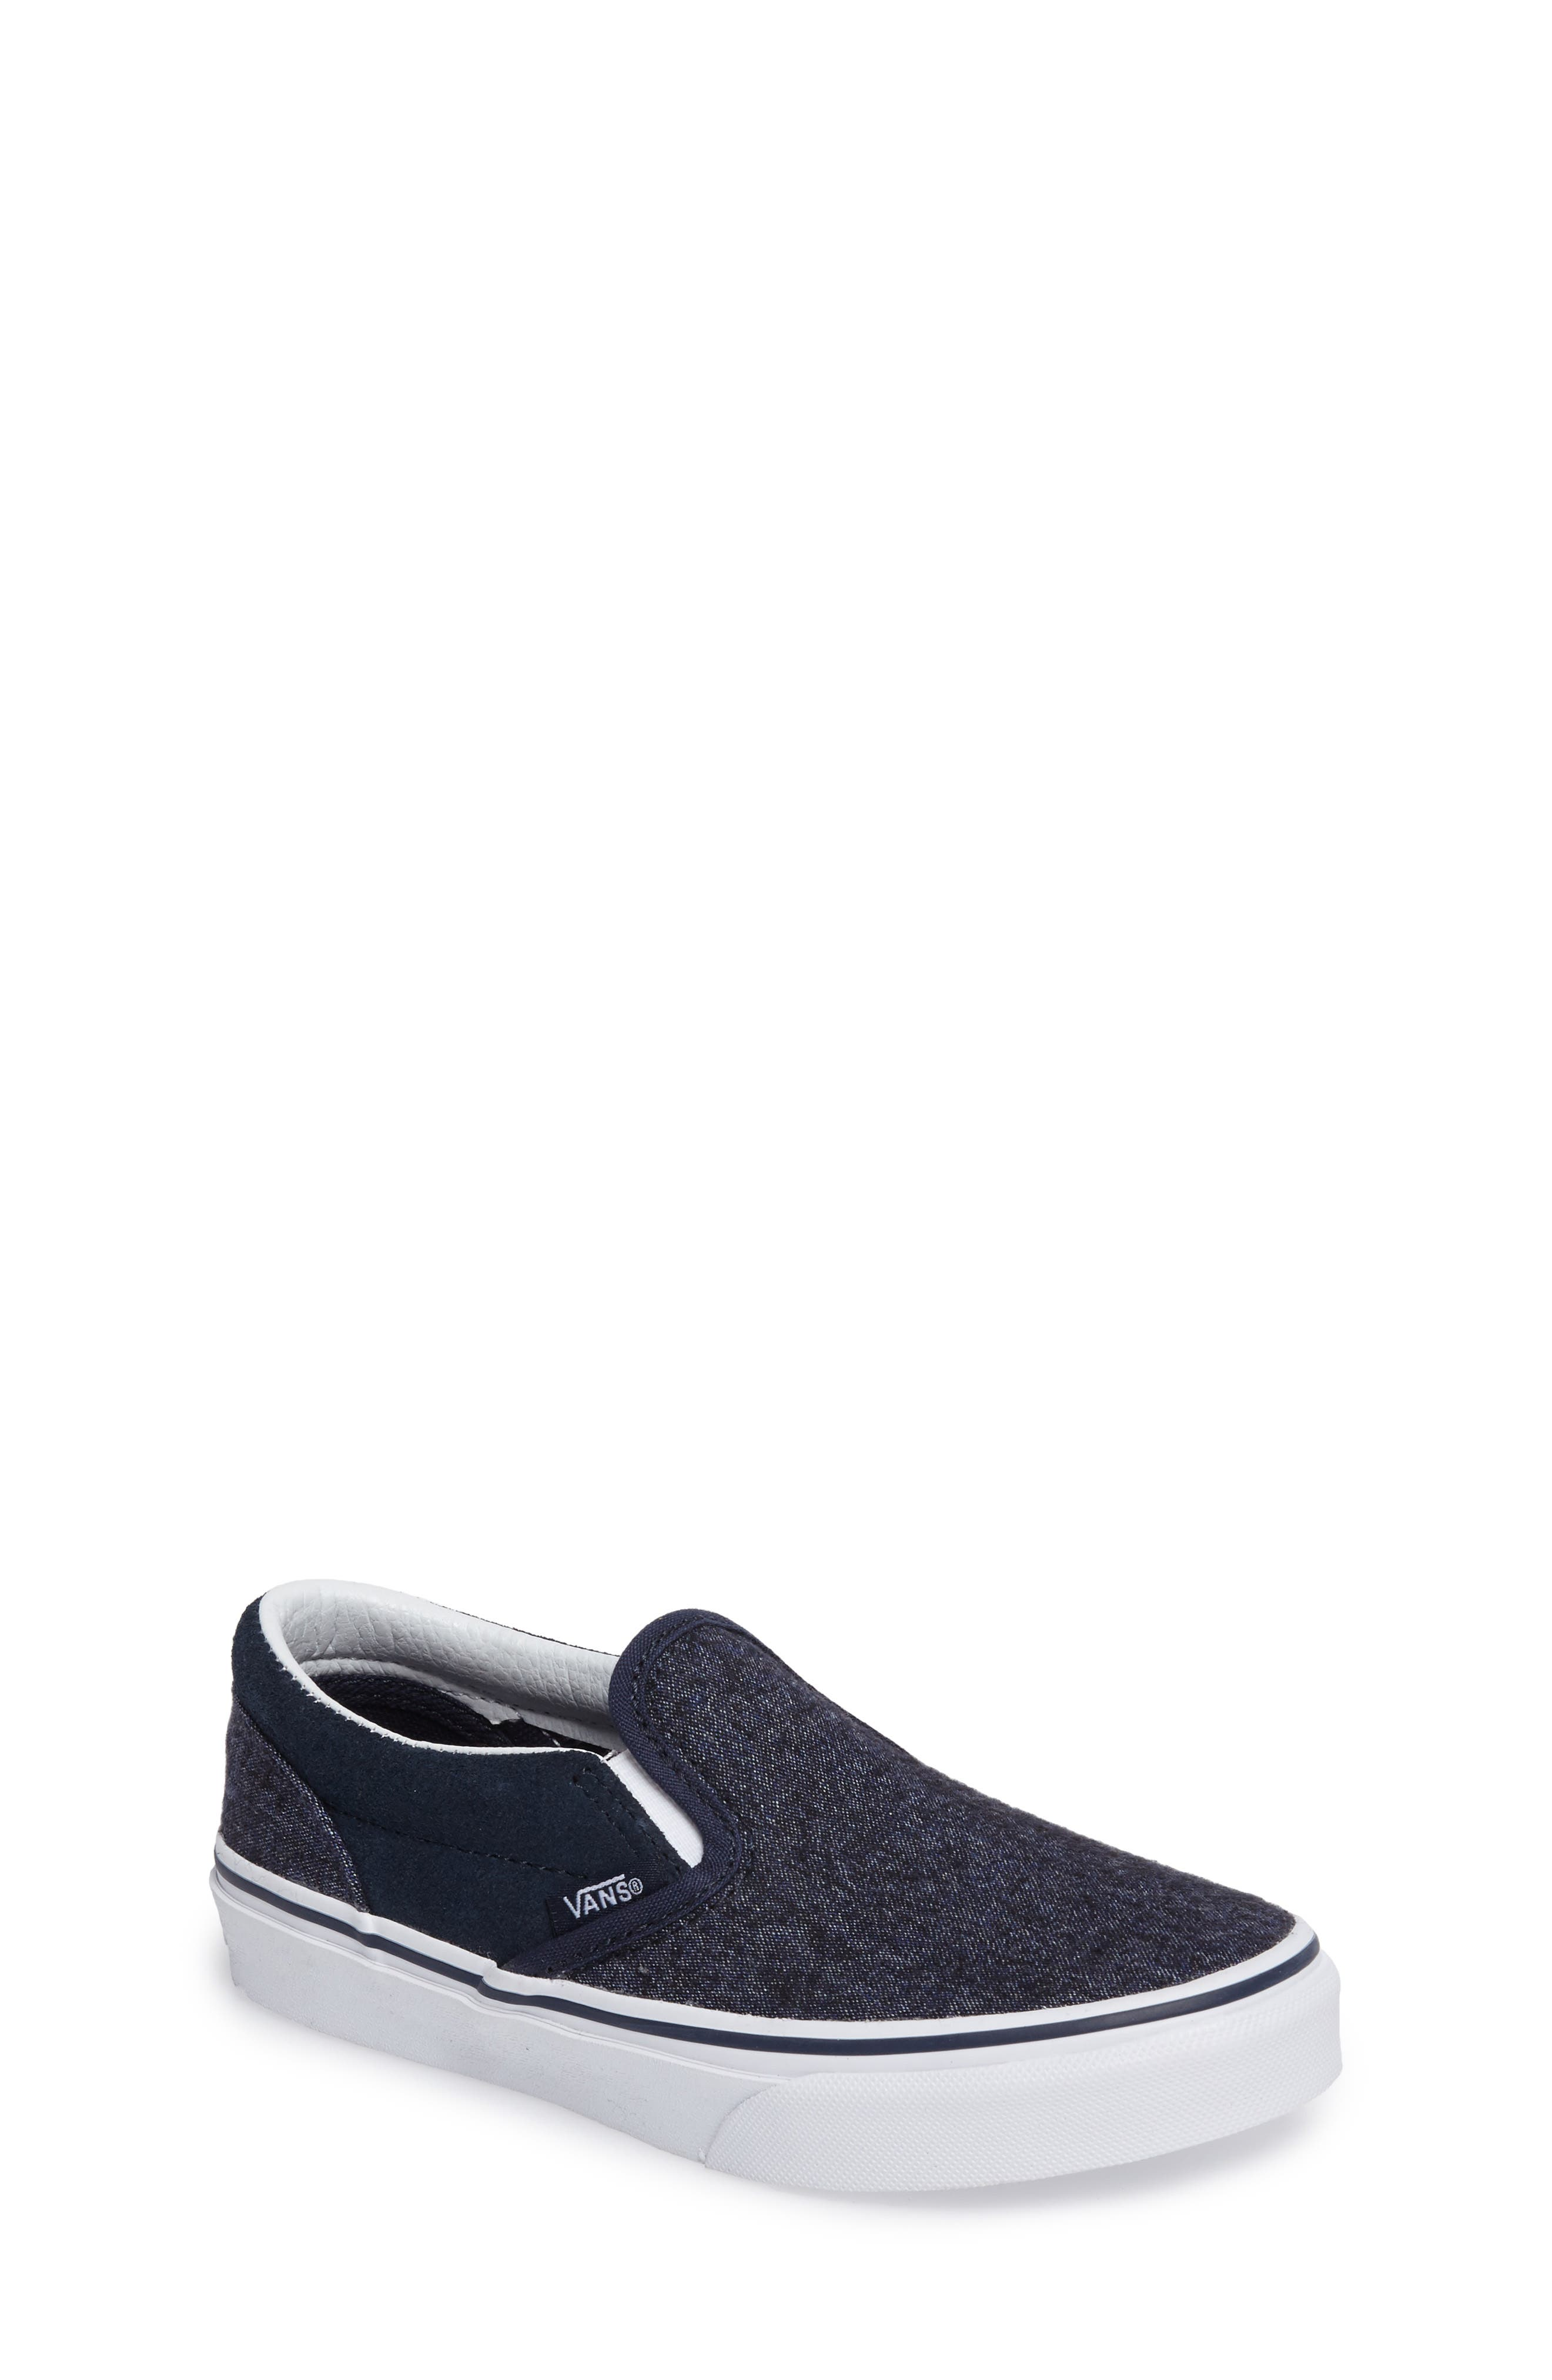 Vans Classic Slip-On (Baby, Walker, Toddler, Little Kid & Big Kid)